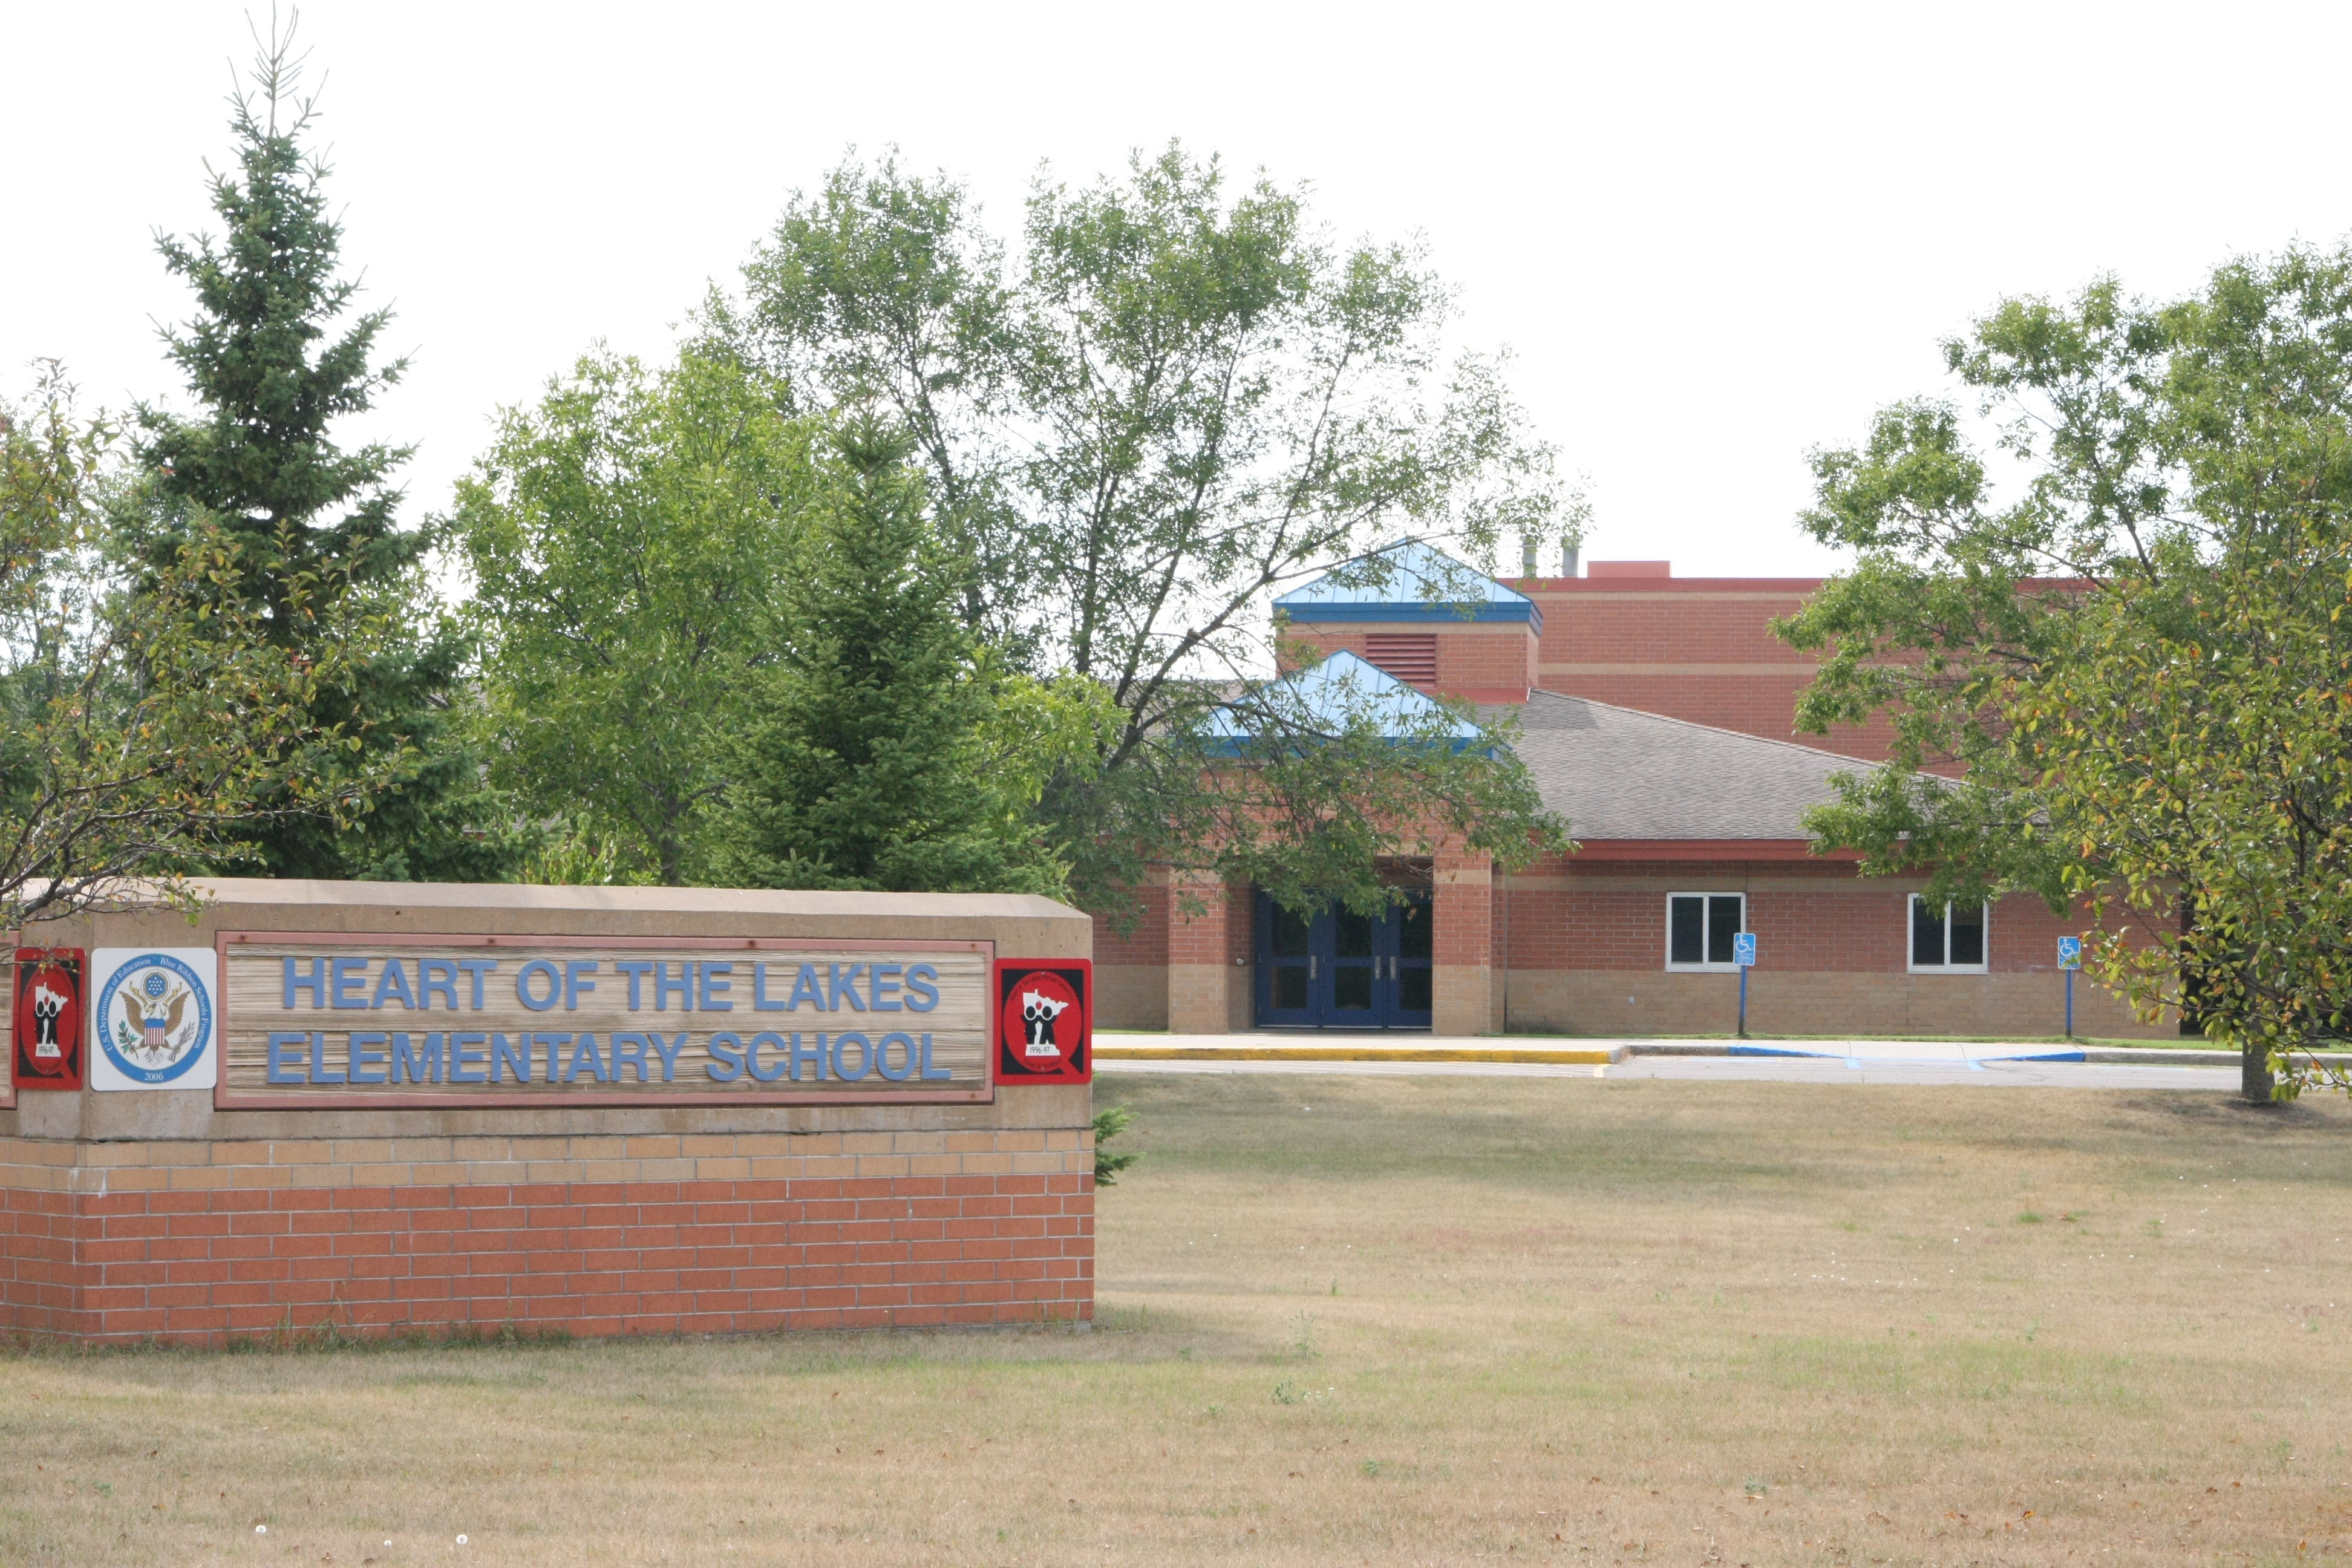 Heart of the Lakes Elementary School